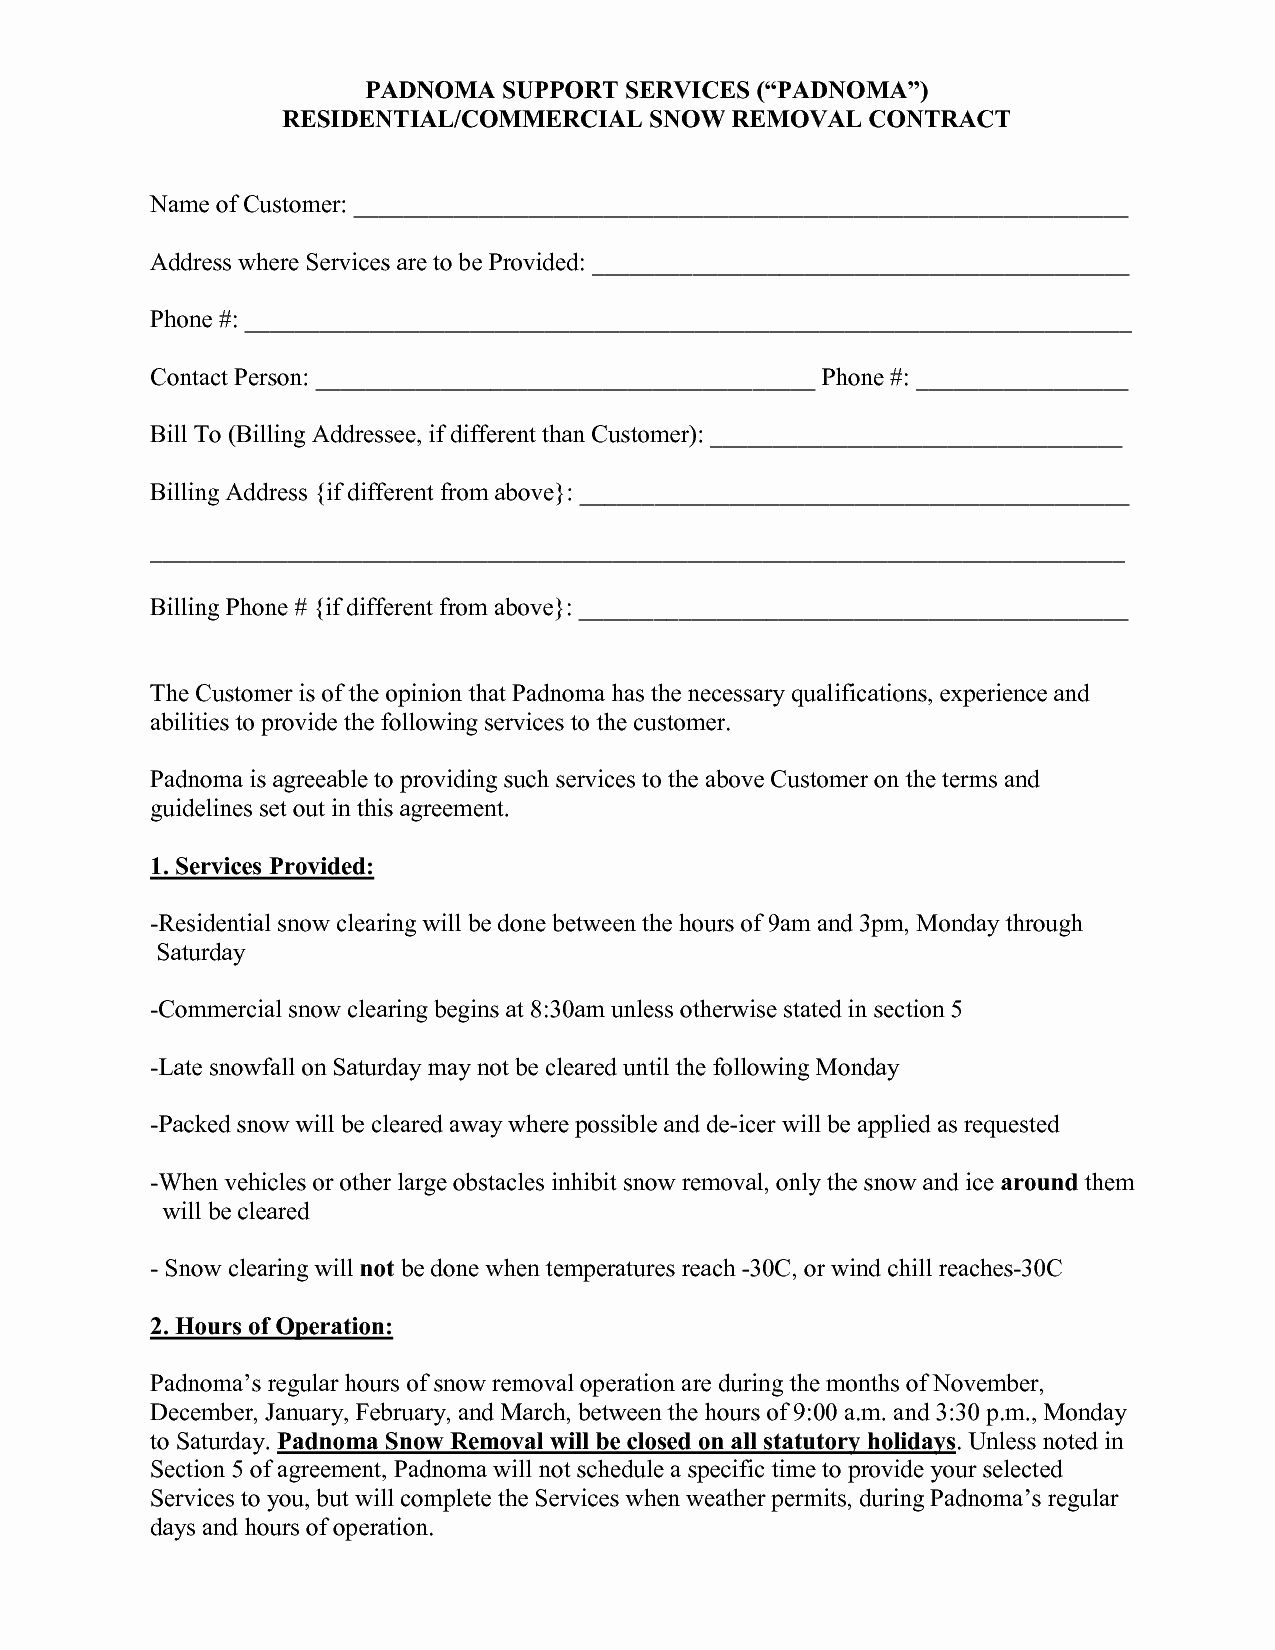 Snow Removal Contract Template Inspirational 10 Best Of Snow Plow Proposal Forms Snow Removal Contract Template Snow Removal Contract Snow Removal Residential snow removal contract template